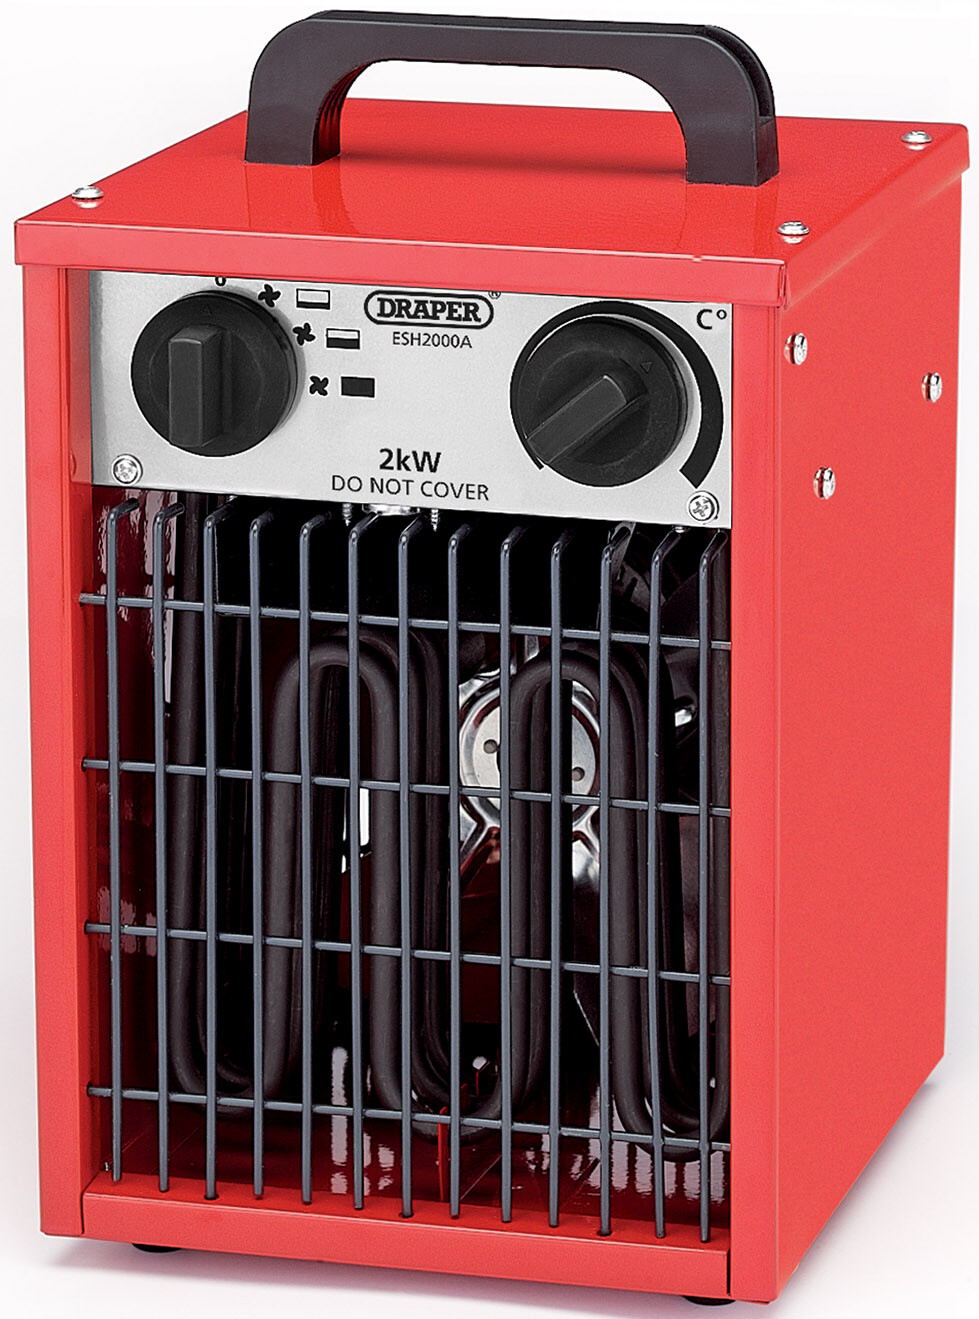 Draper 07216 ESH2000A 2kW 230V Space Heater